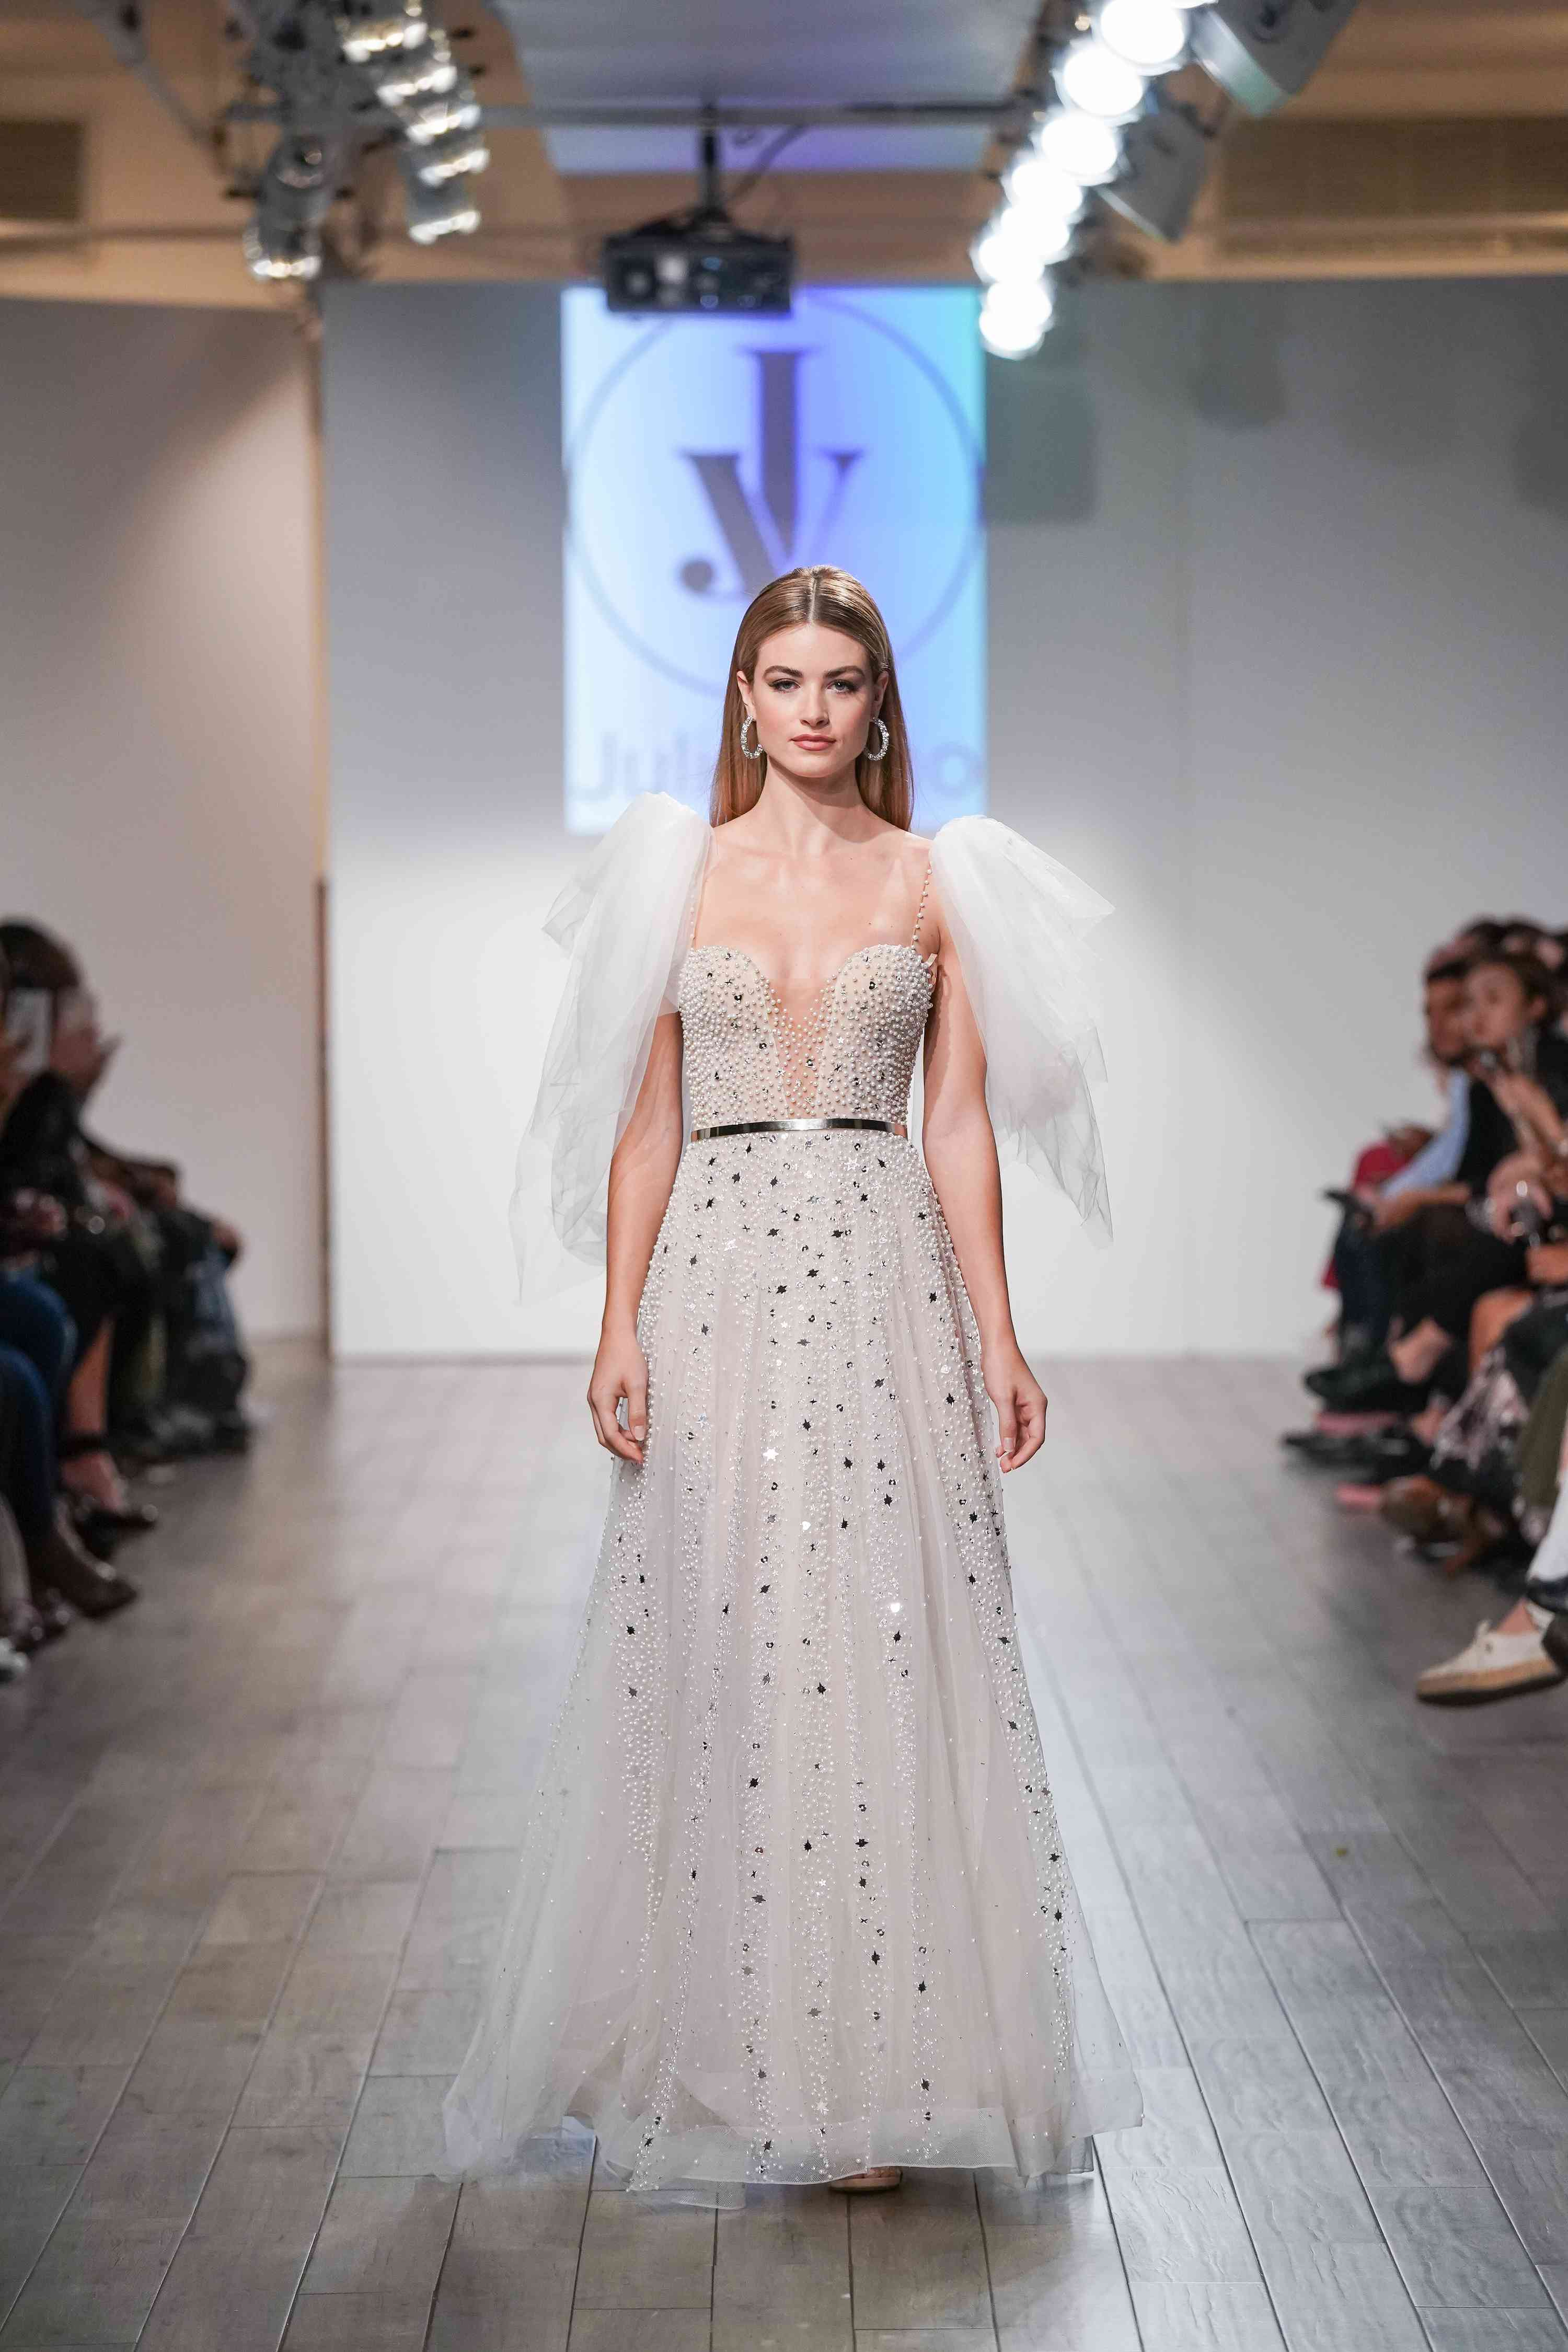 Model in embellished wedding dress with tulle sleeves